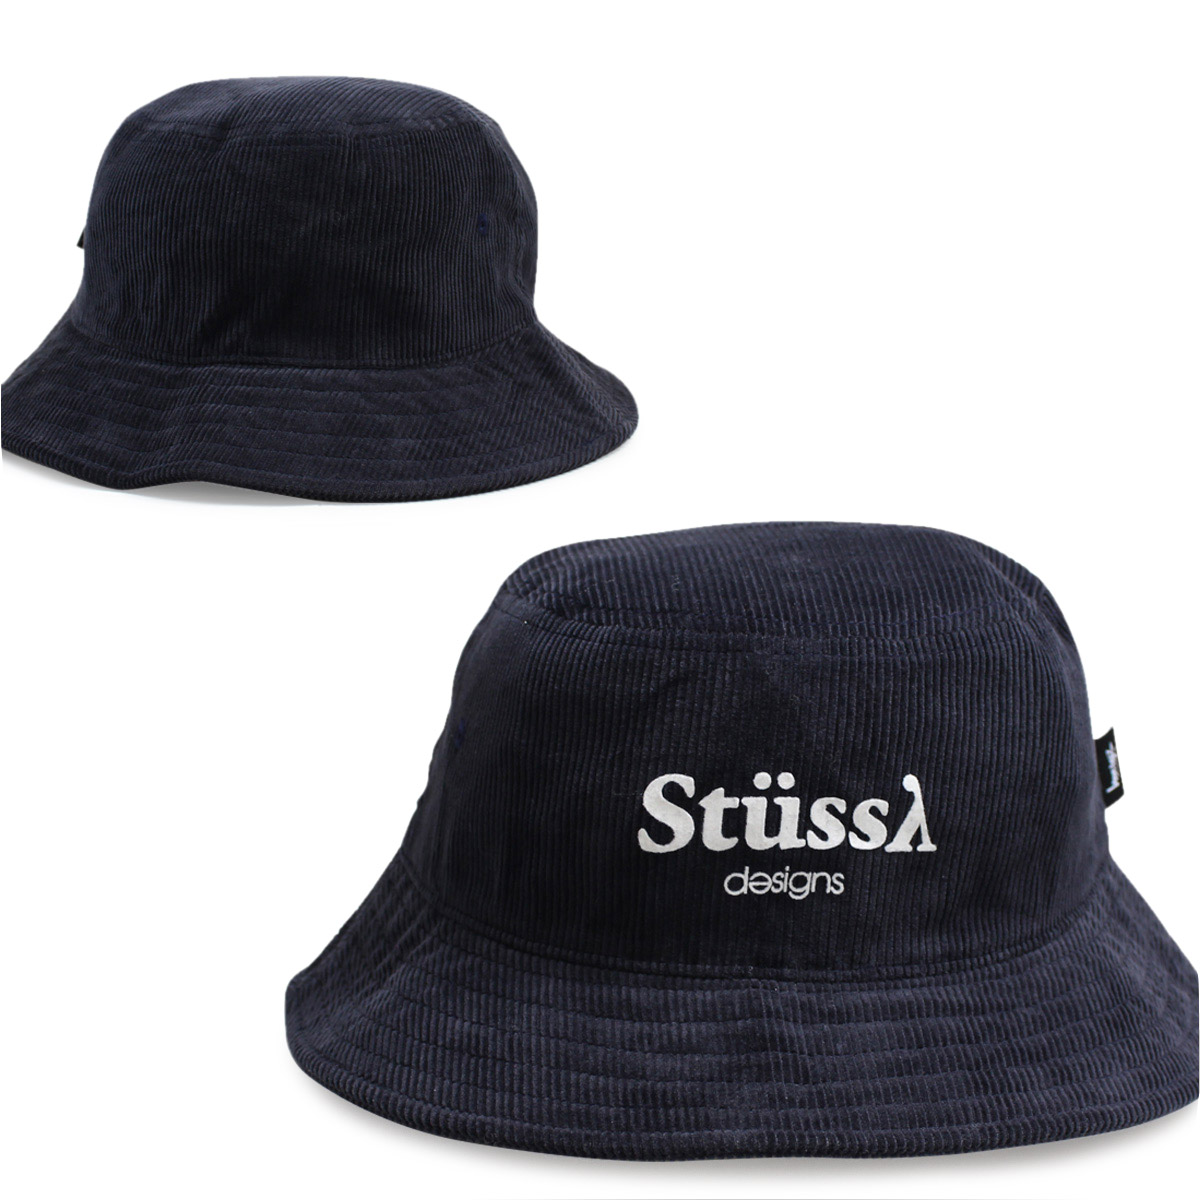 WOMEN STUSSY Stussy women Hat hats bucket Hat STUSSY DESIGNS BUCKET HAT  Navy women s f9e0f99b0b